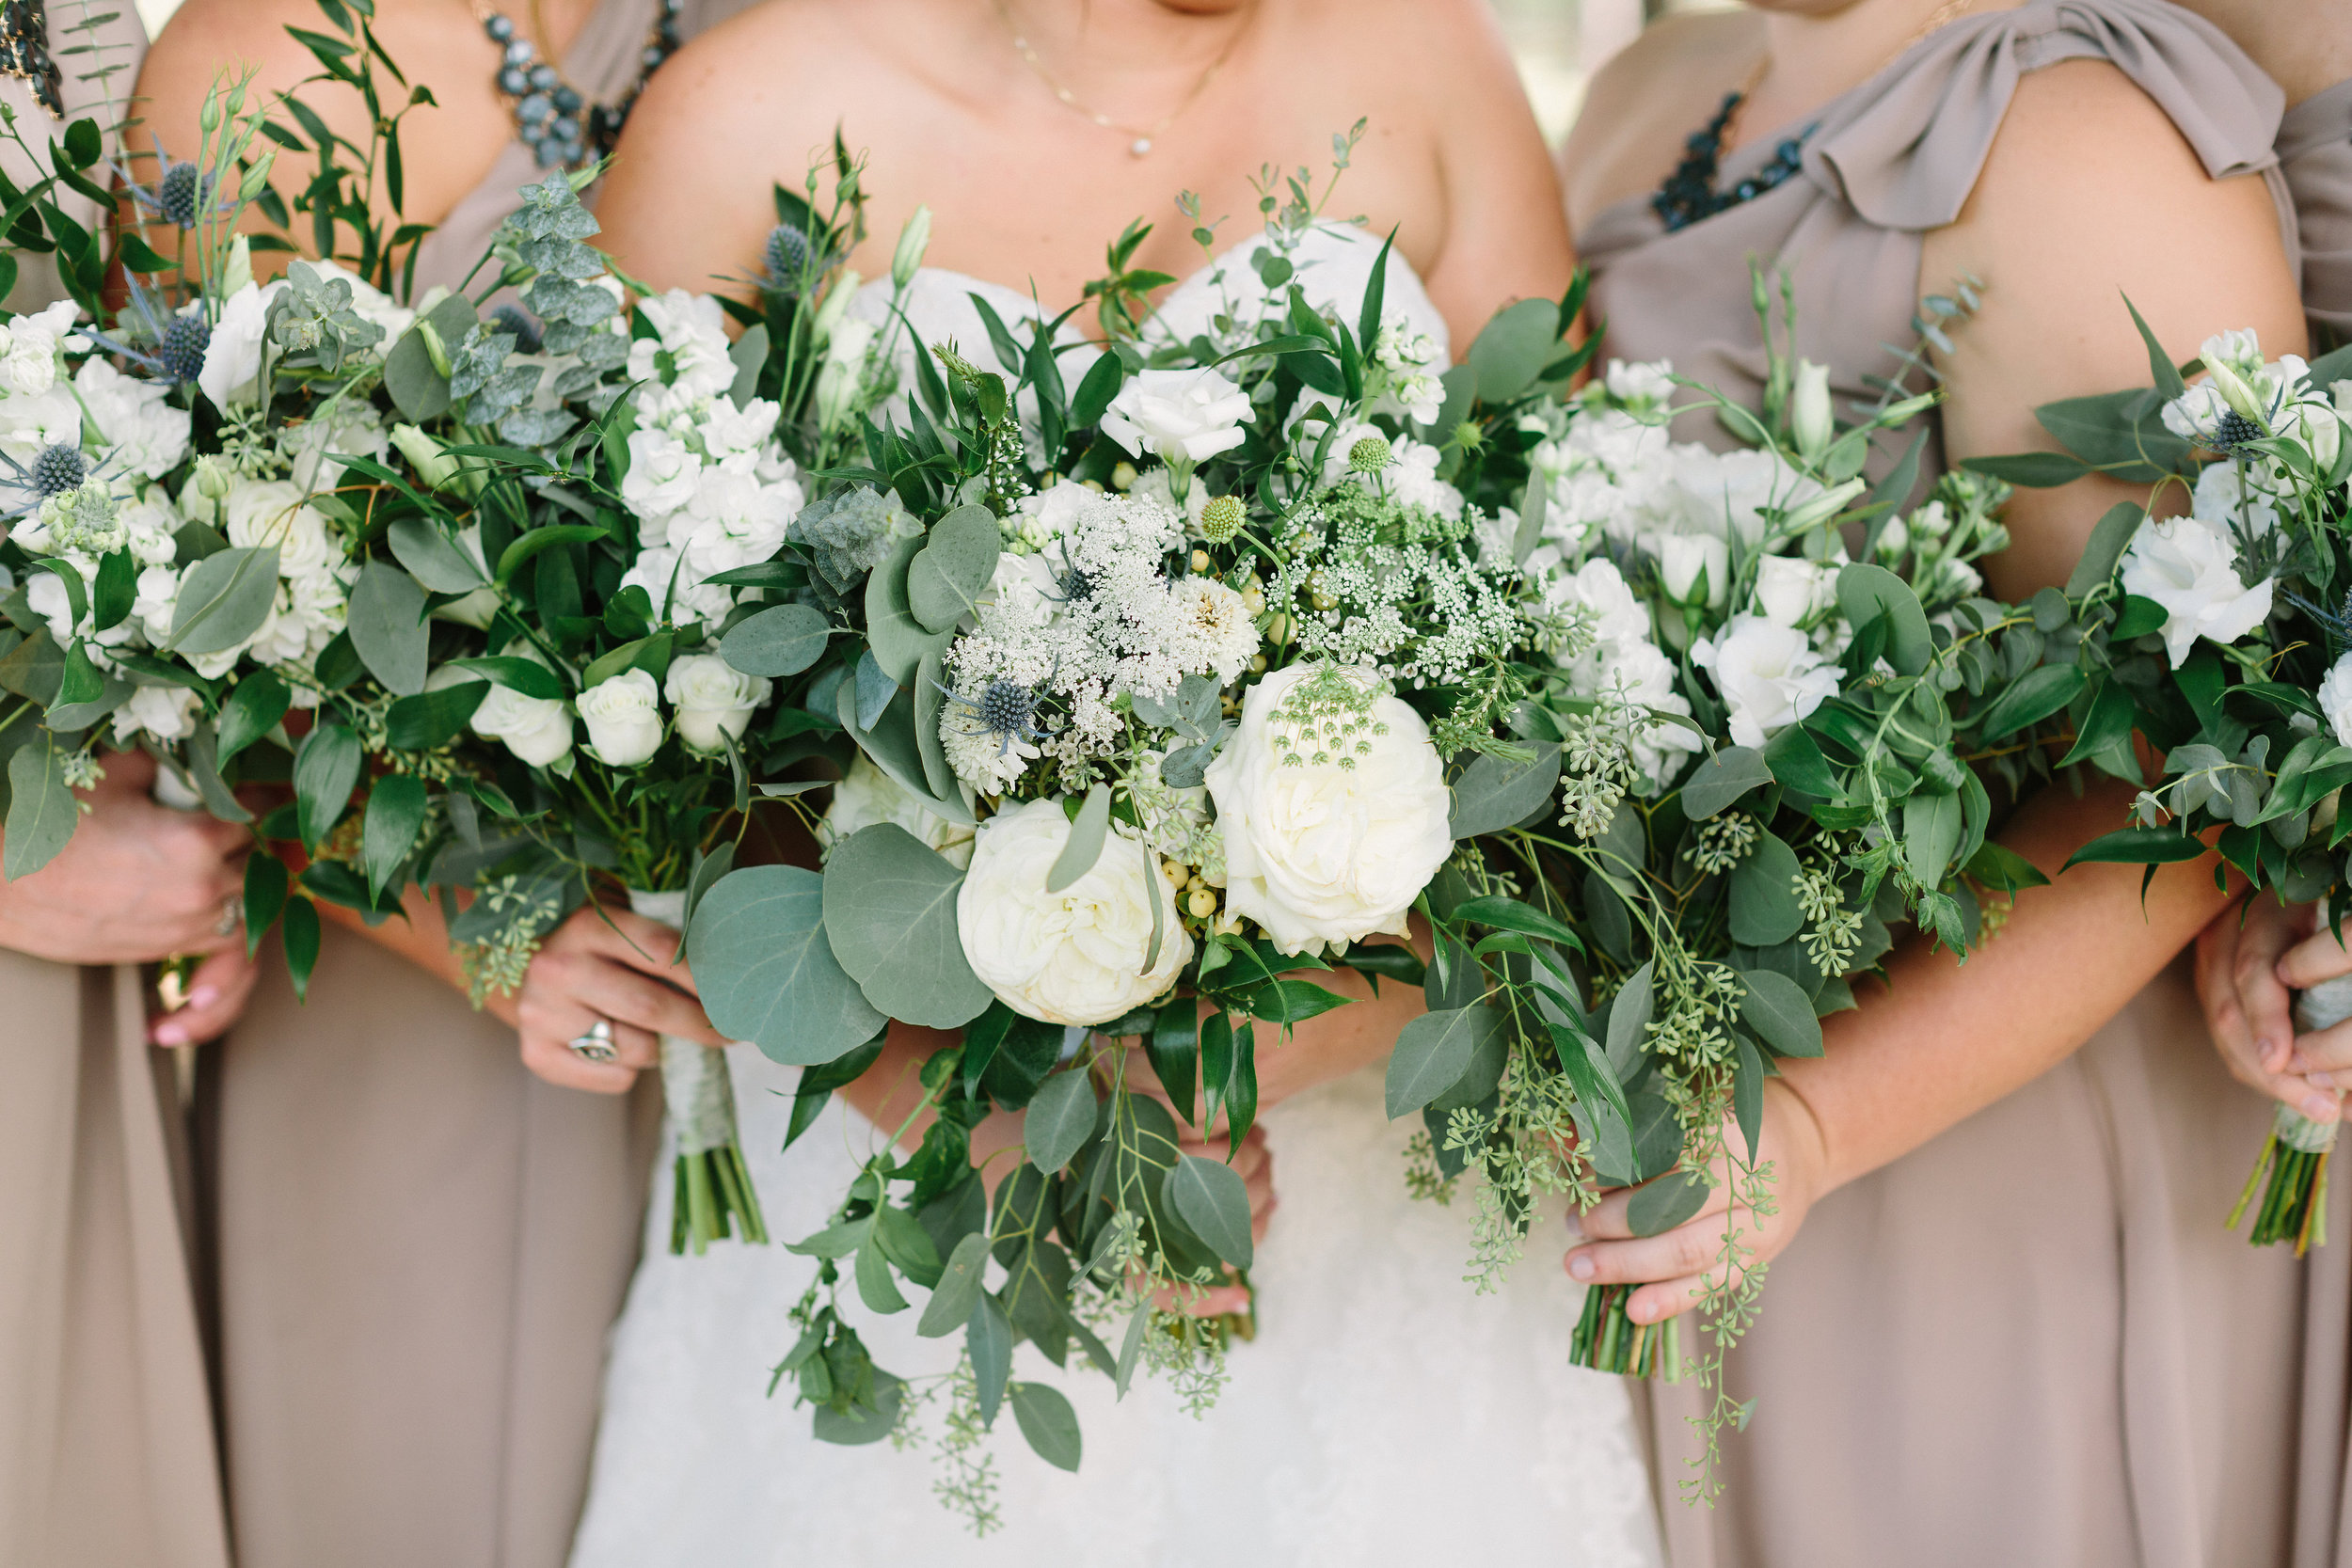 Green & white organic bouquets. Garden Roses, eucalyptus.  Stone Chapel at Matt Lane Farm. Erin WIlson Photography. Rose of Sharon Floral Designs.